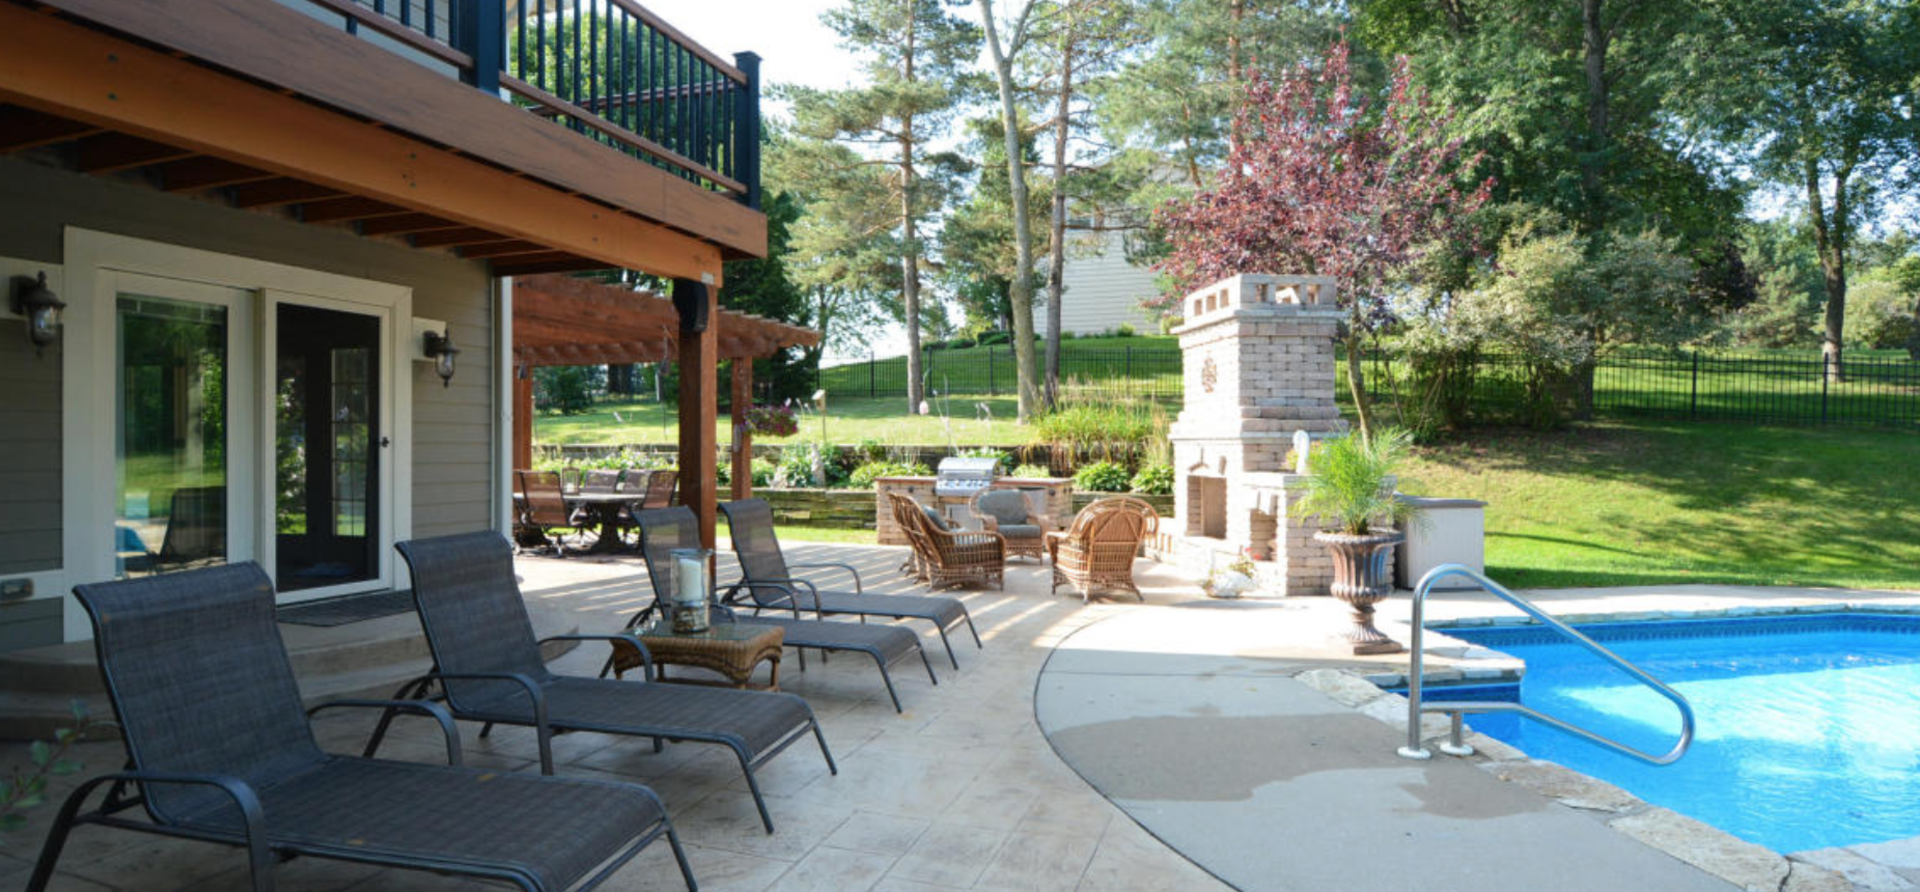 Executive Living at N10W29191 CATHEDRAL CT in Delafield